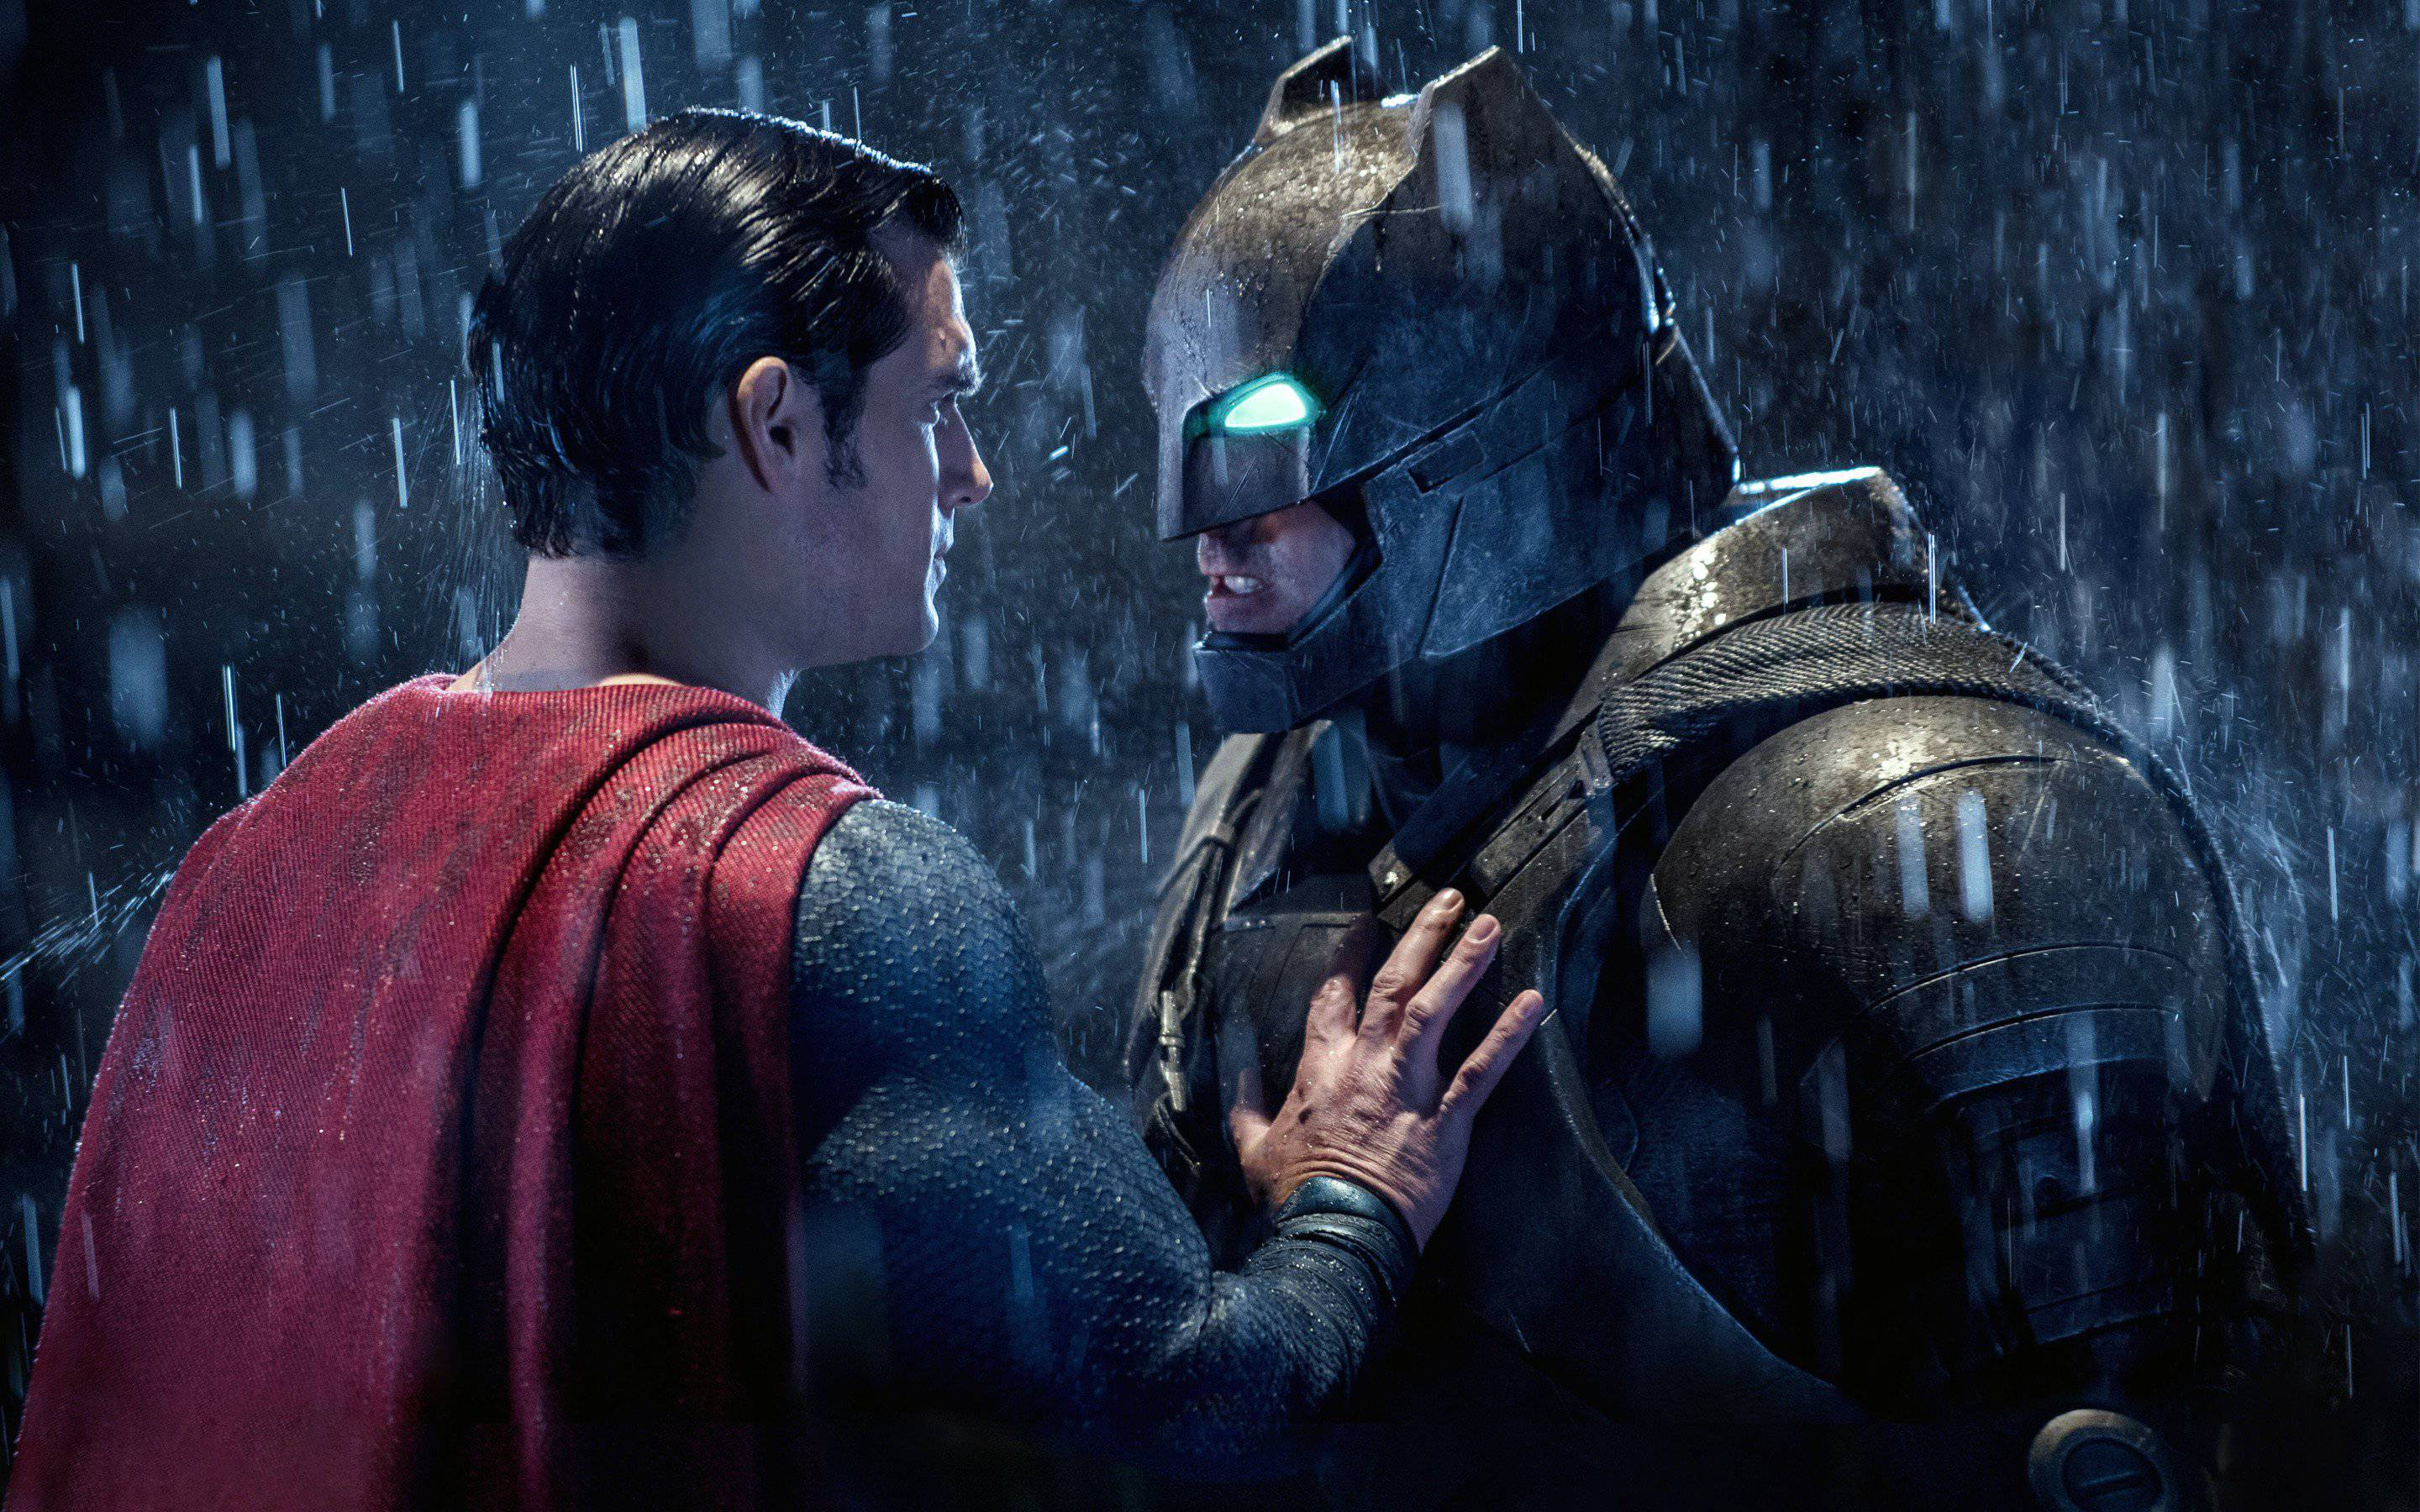 Batman v Superman Producer Knocks Rotten Tomatoes For Destroying Film Criticism